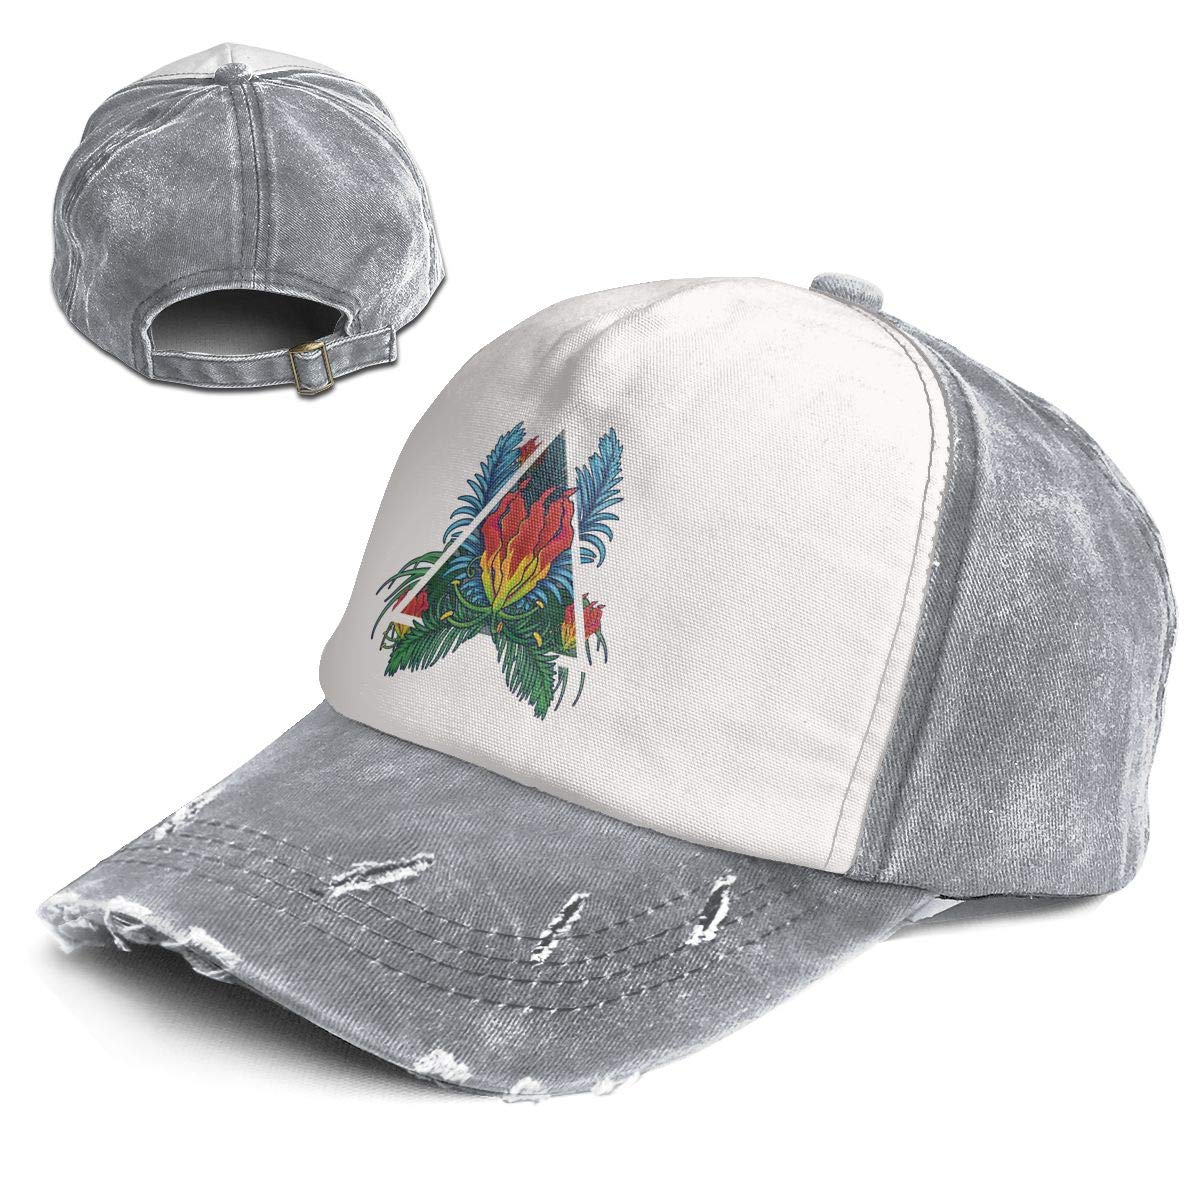 Fashion Vintage Hat Flowers Decorated with Triangular Title Box Adjustable Dad Hat Baseball Cowboy Cap